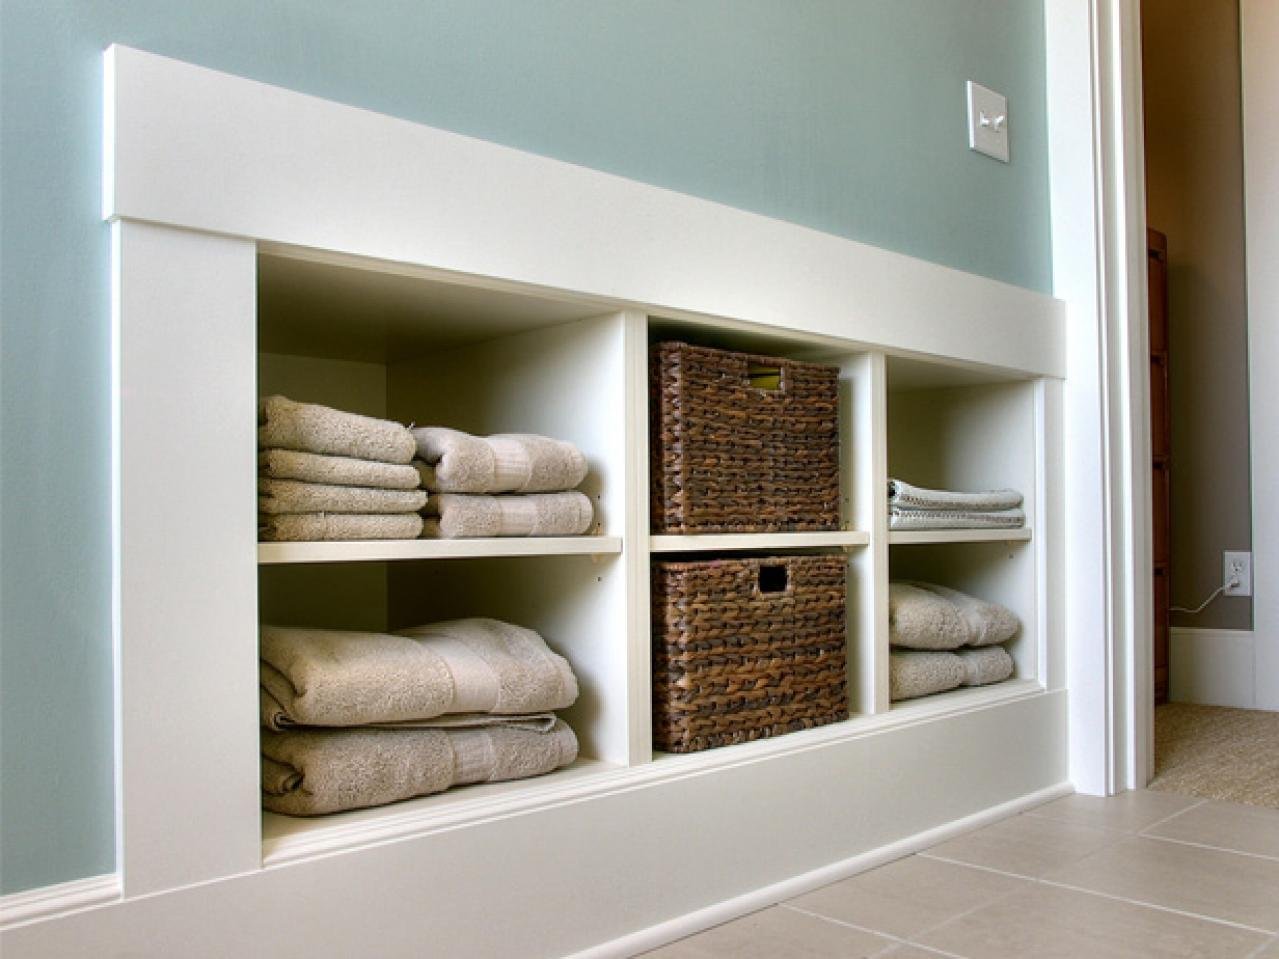 Laundry Room Storage Ideas | DIY